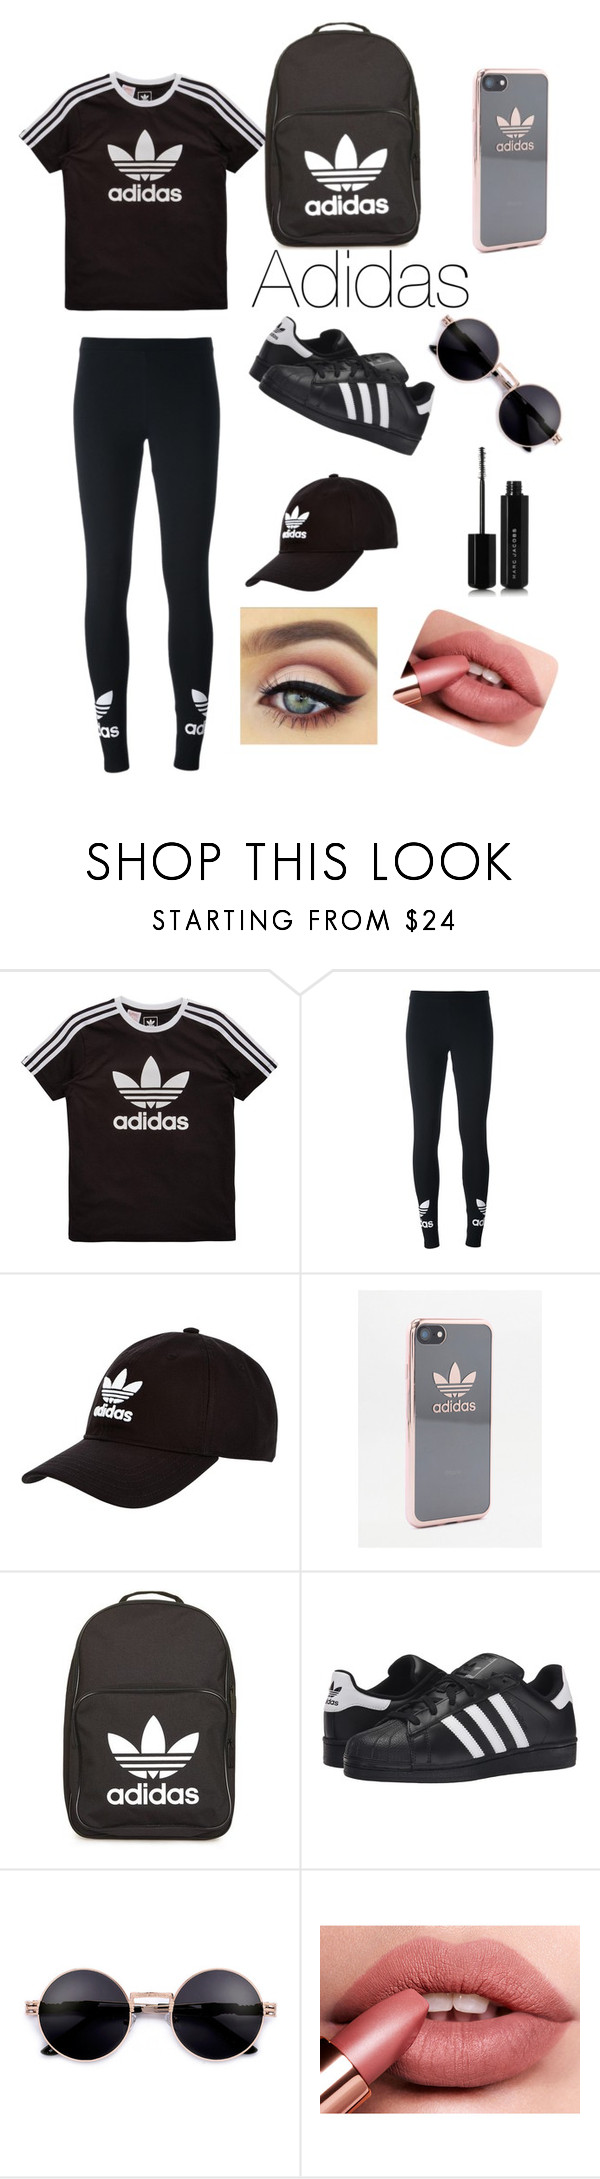 """Adidas❤️"" by oliviaonline ❤ liked on Polyvore featuring adidas Originals, adidas and Marc Jacobs"